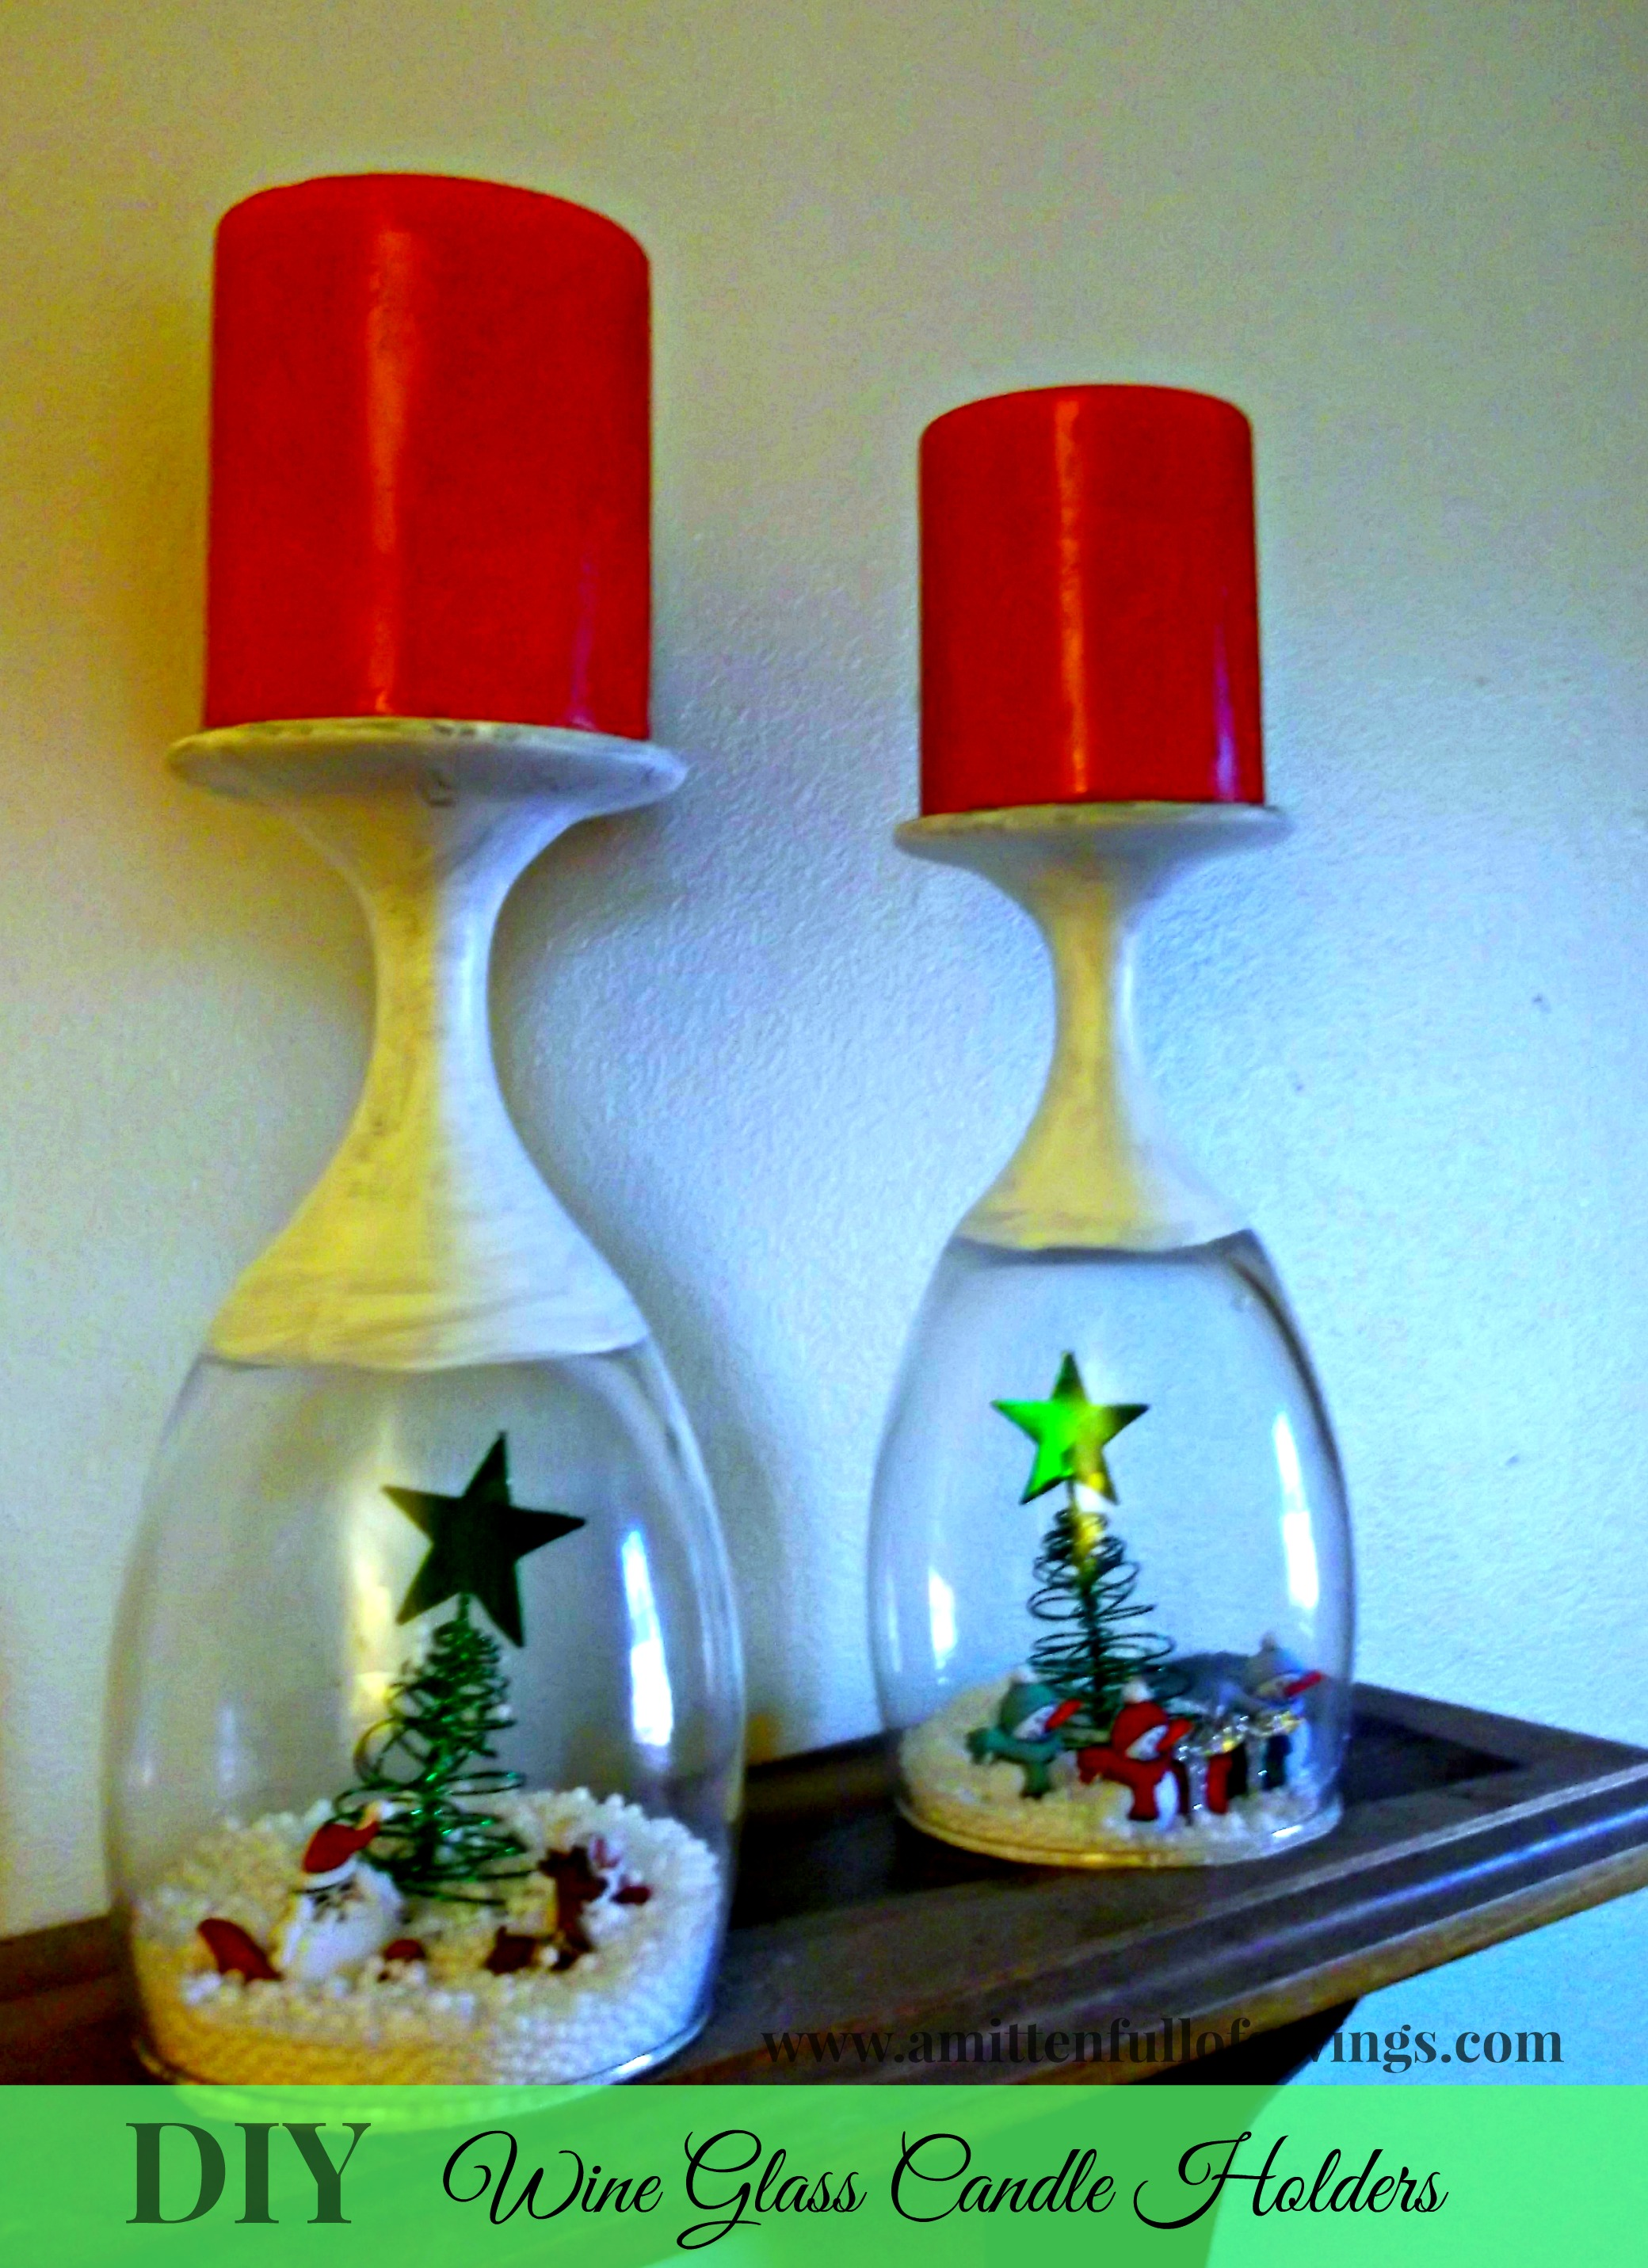 Diy christmas wine glasses candle holder this worthey life for How to make glass candle holders